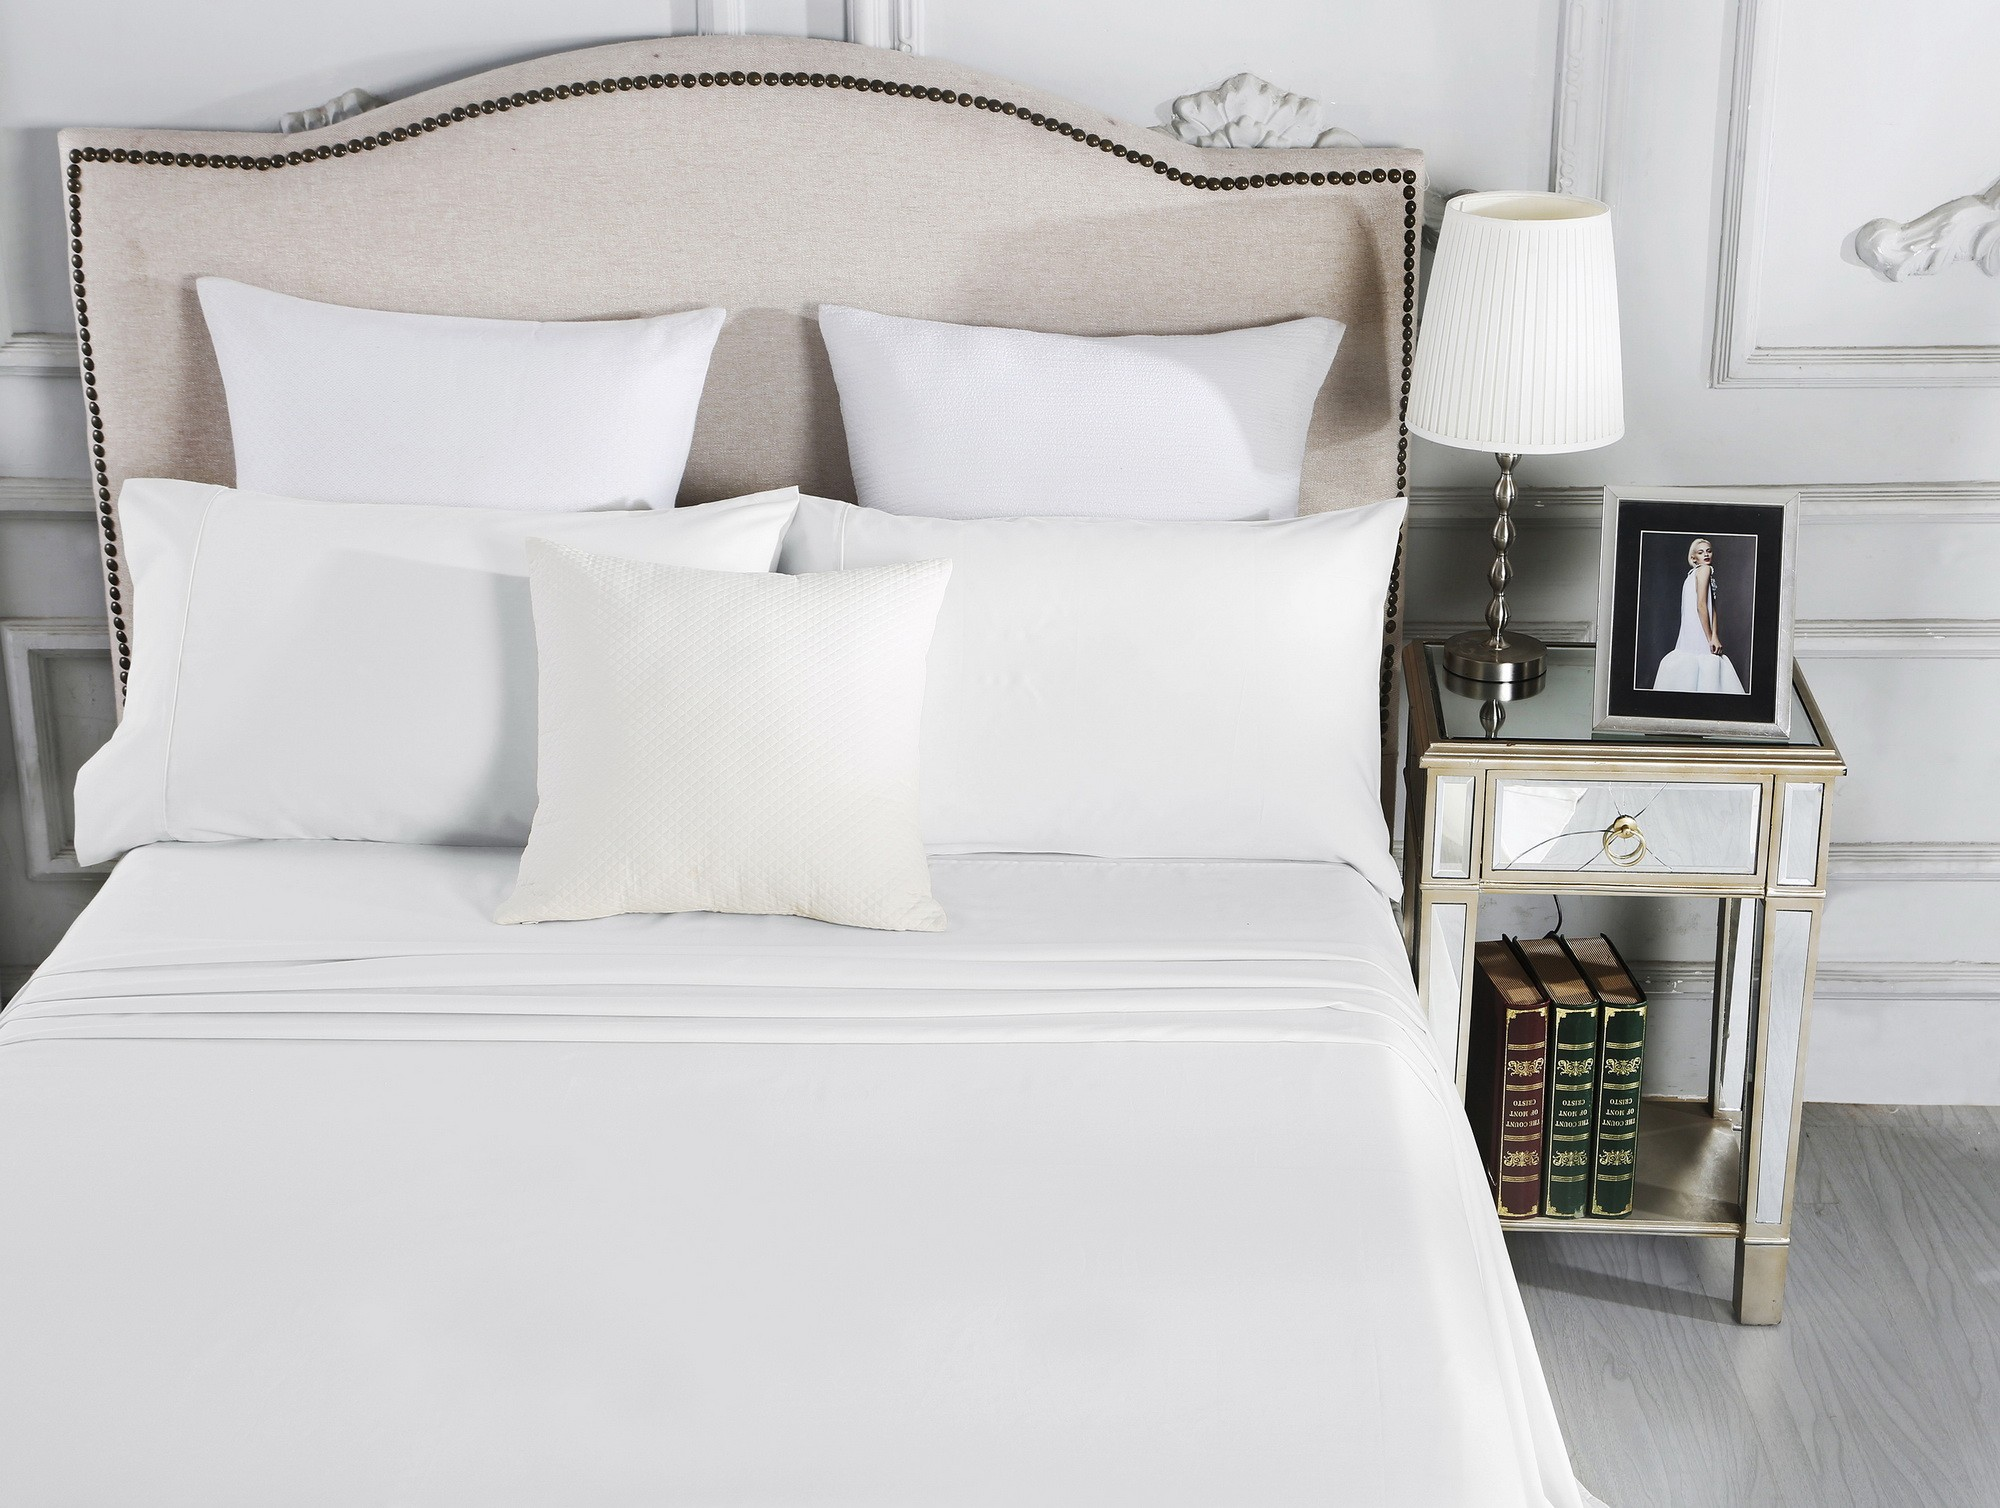 Luxury 1800TC Cotton Rich King Sheet Sets White